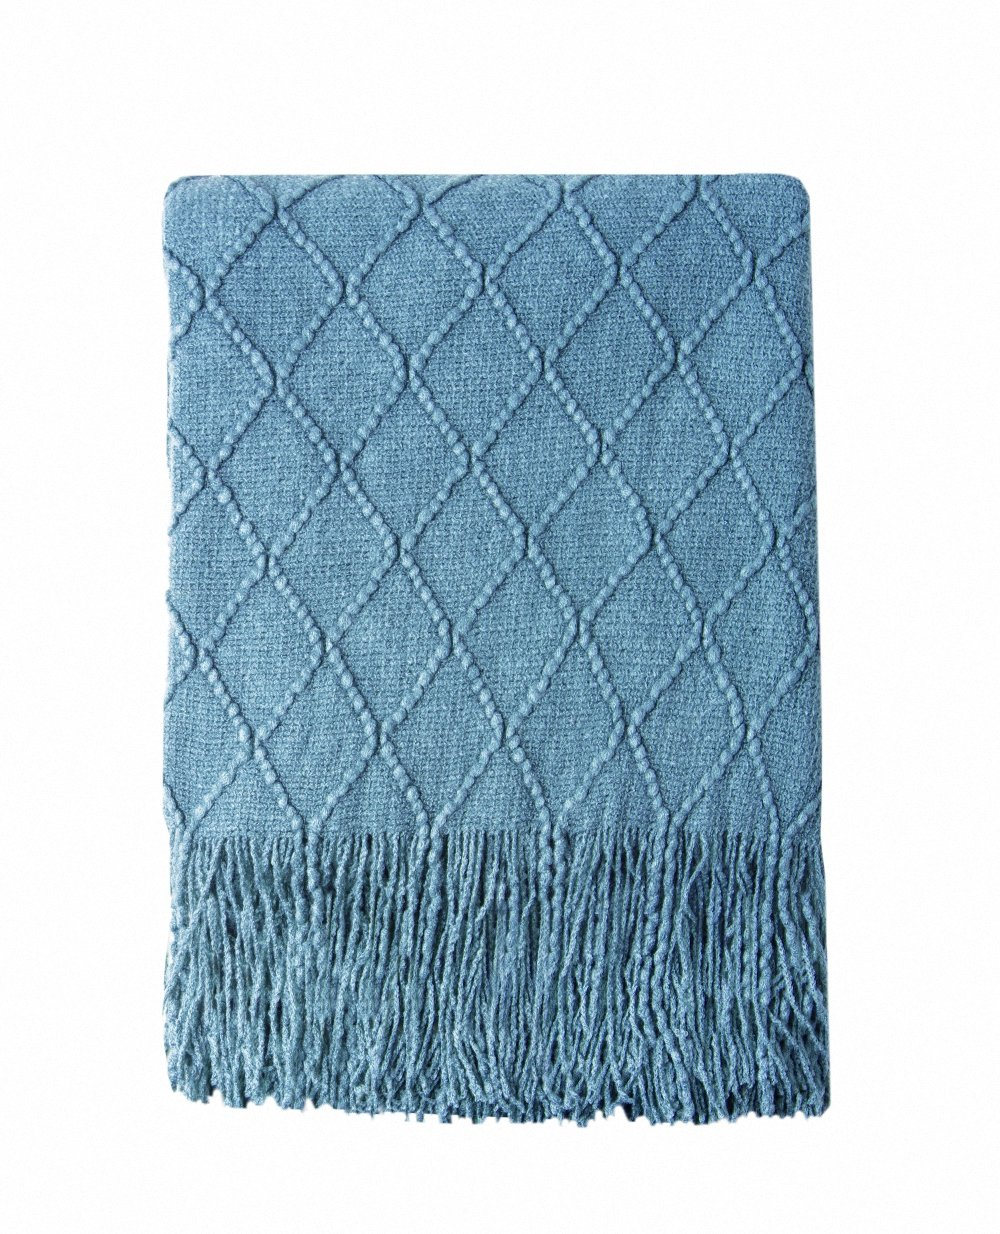 Bourina Throw Blanket Textured Solid Soft for Sofa Couch Cover Decorative Knitted Blanket, 50'' x 60'', Blue